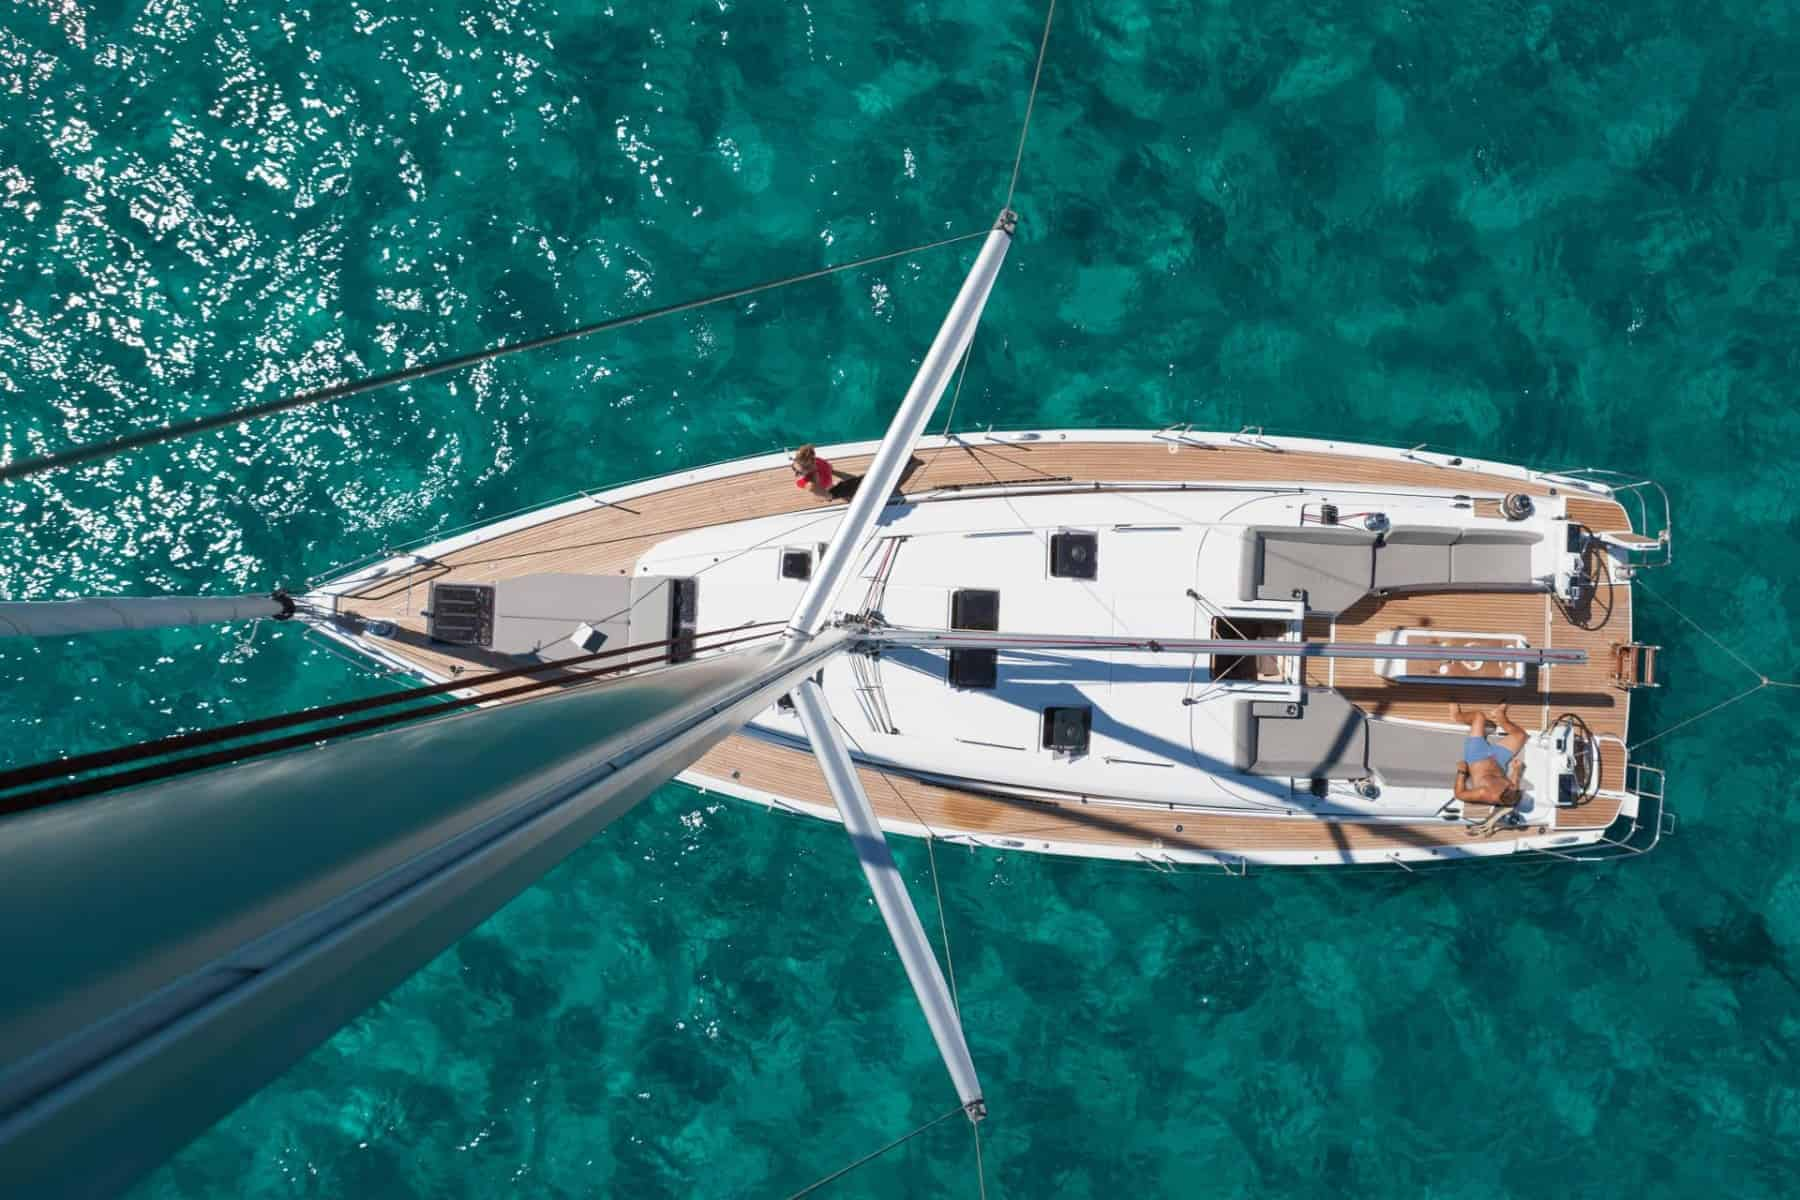 Jeanneau-51-exterior-9-charter-ownership-yacht